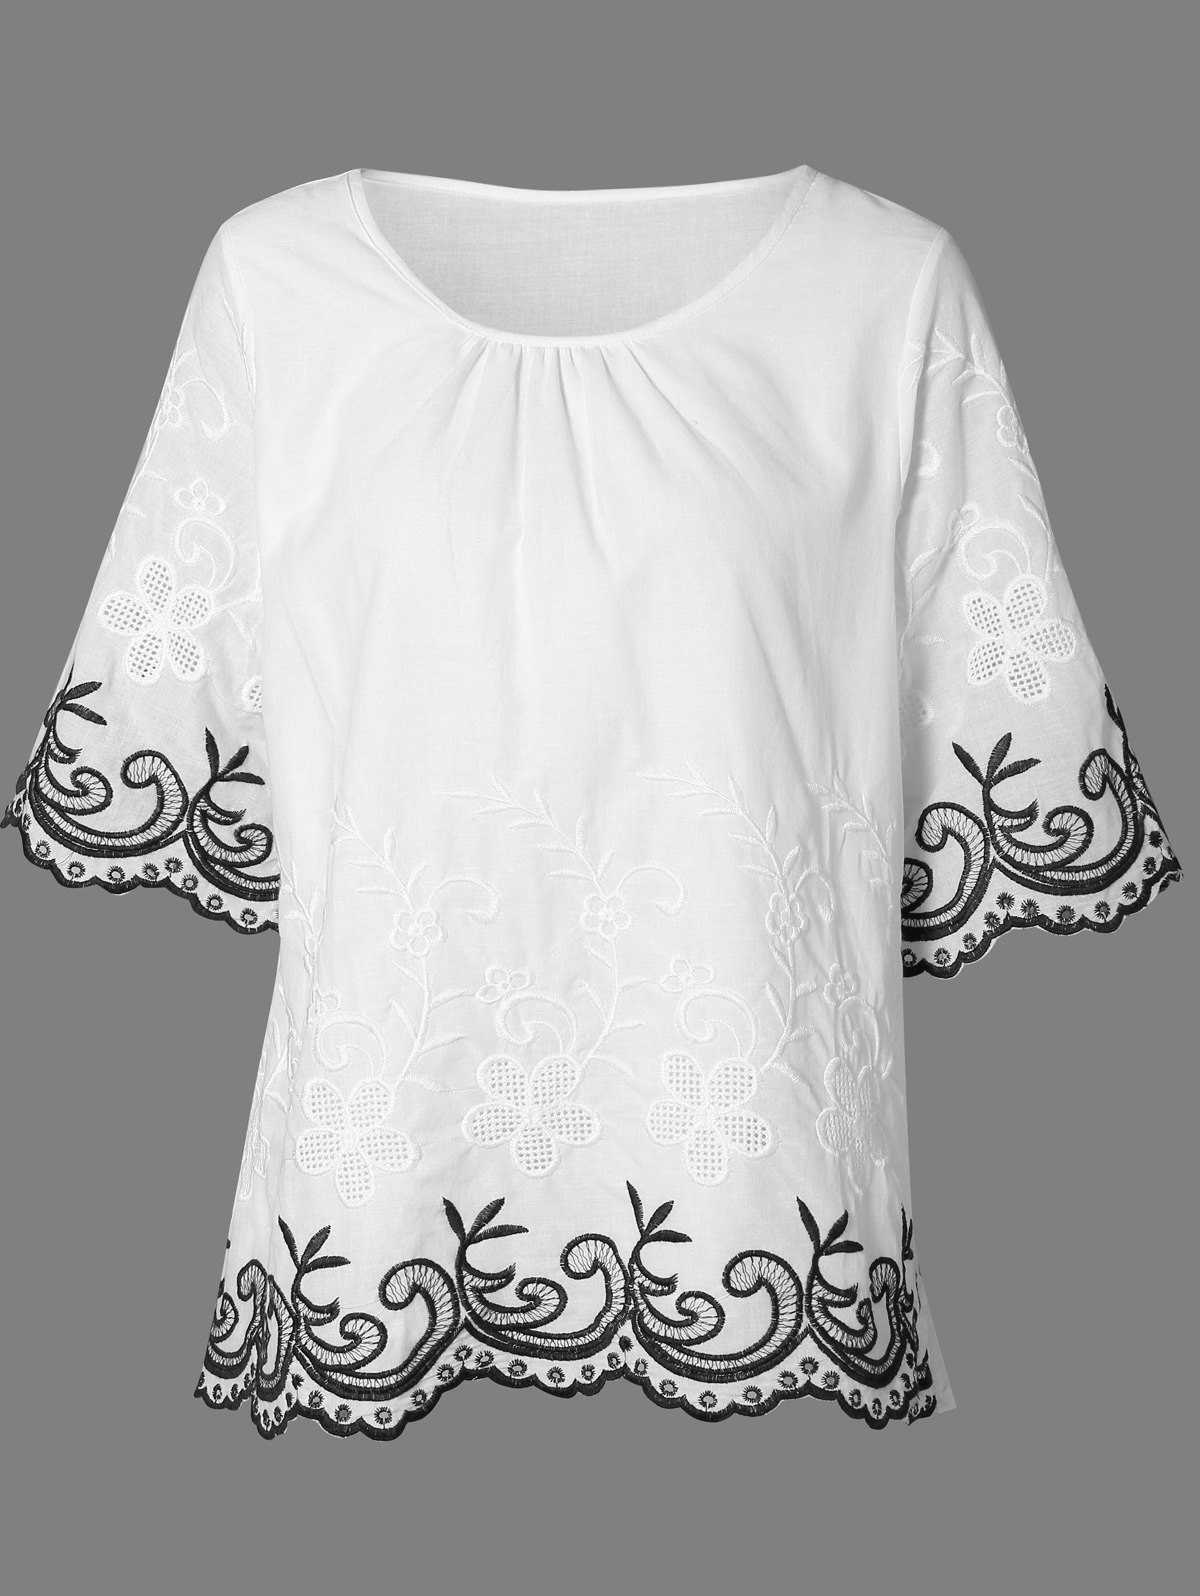 Jewel Neck 3/4 Sleeve Embroidery Blouse - WHITE ONE SIZE